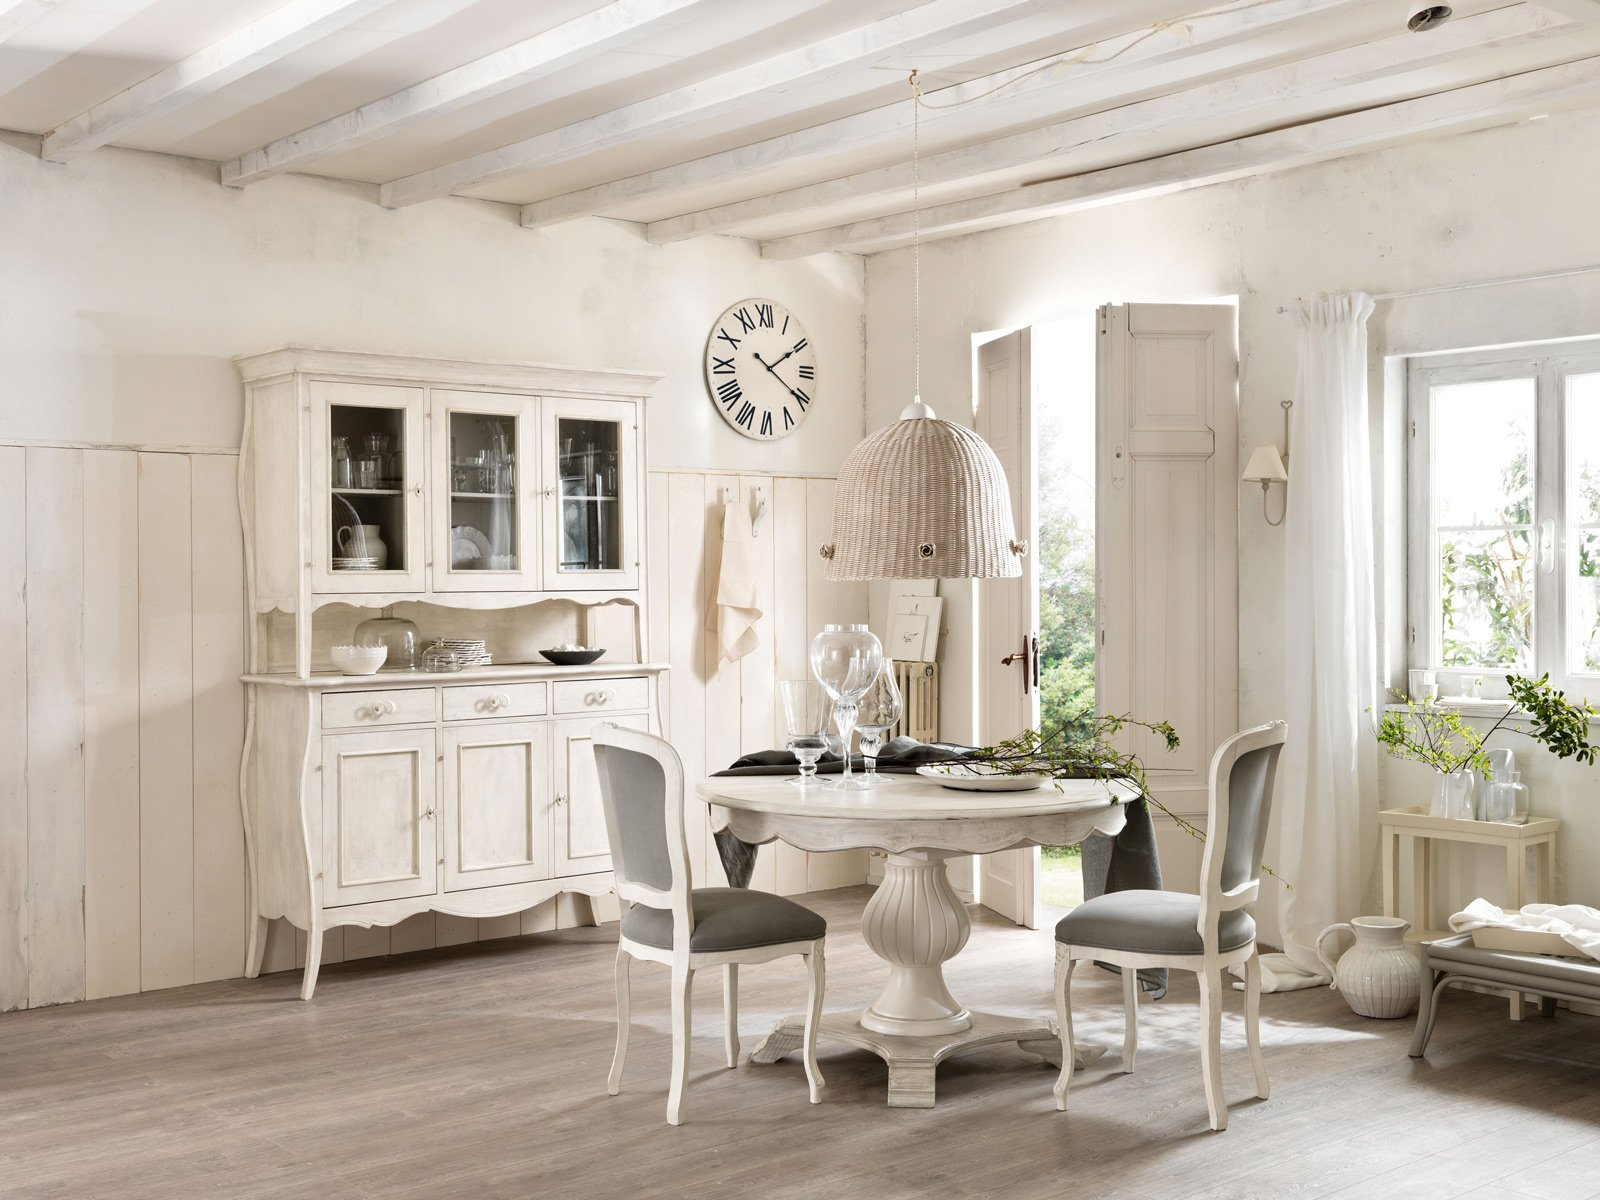 Awesome Soggiorno Country Pictures - Design Trends 2017 - shopmakers.us